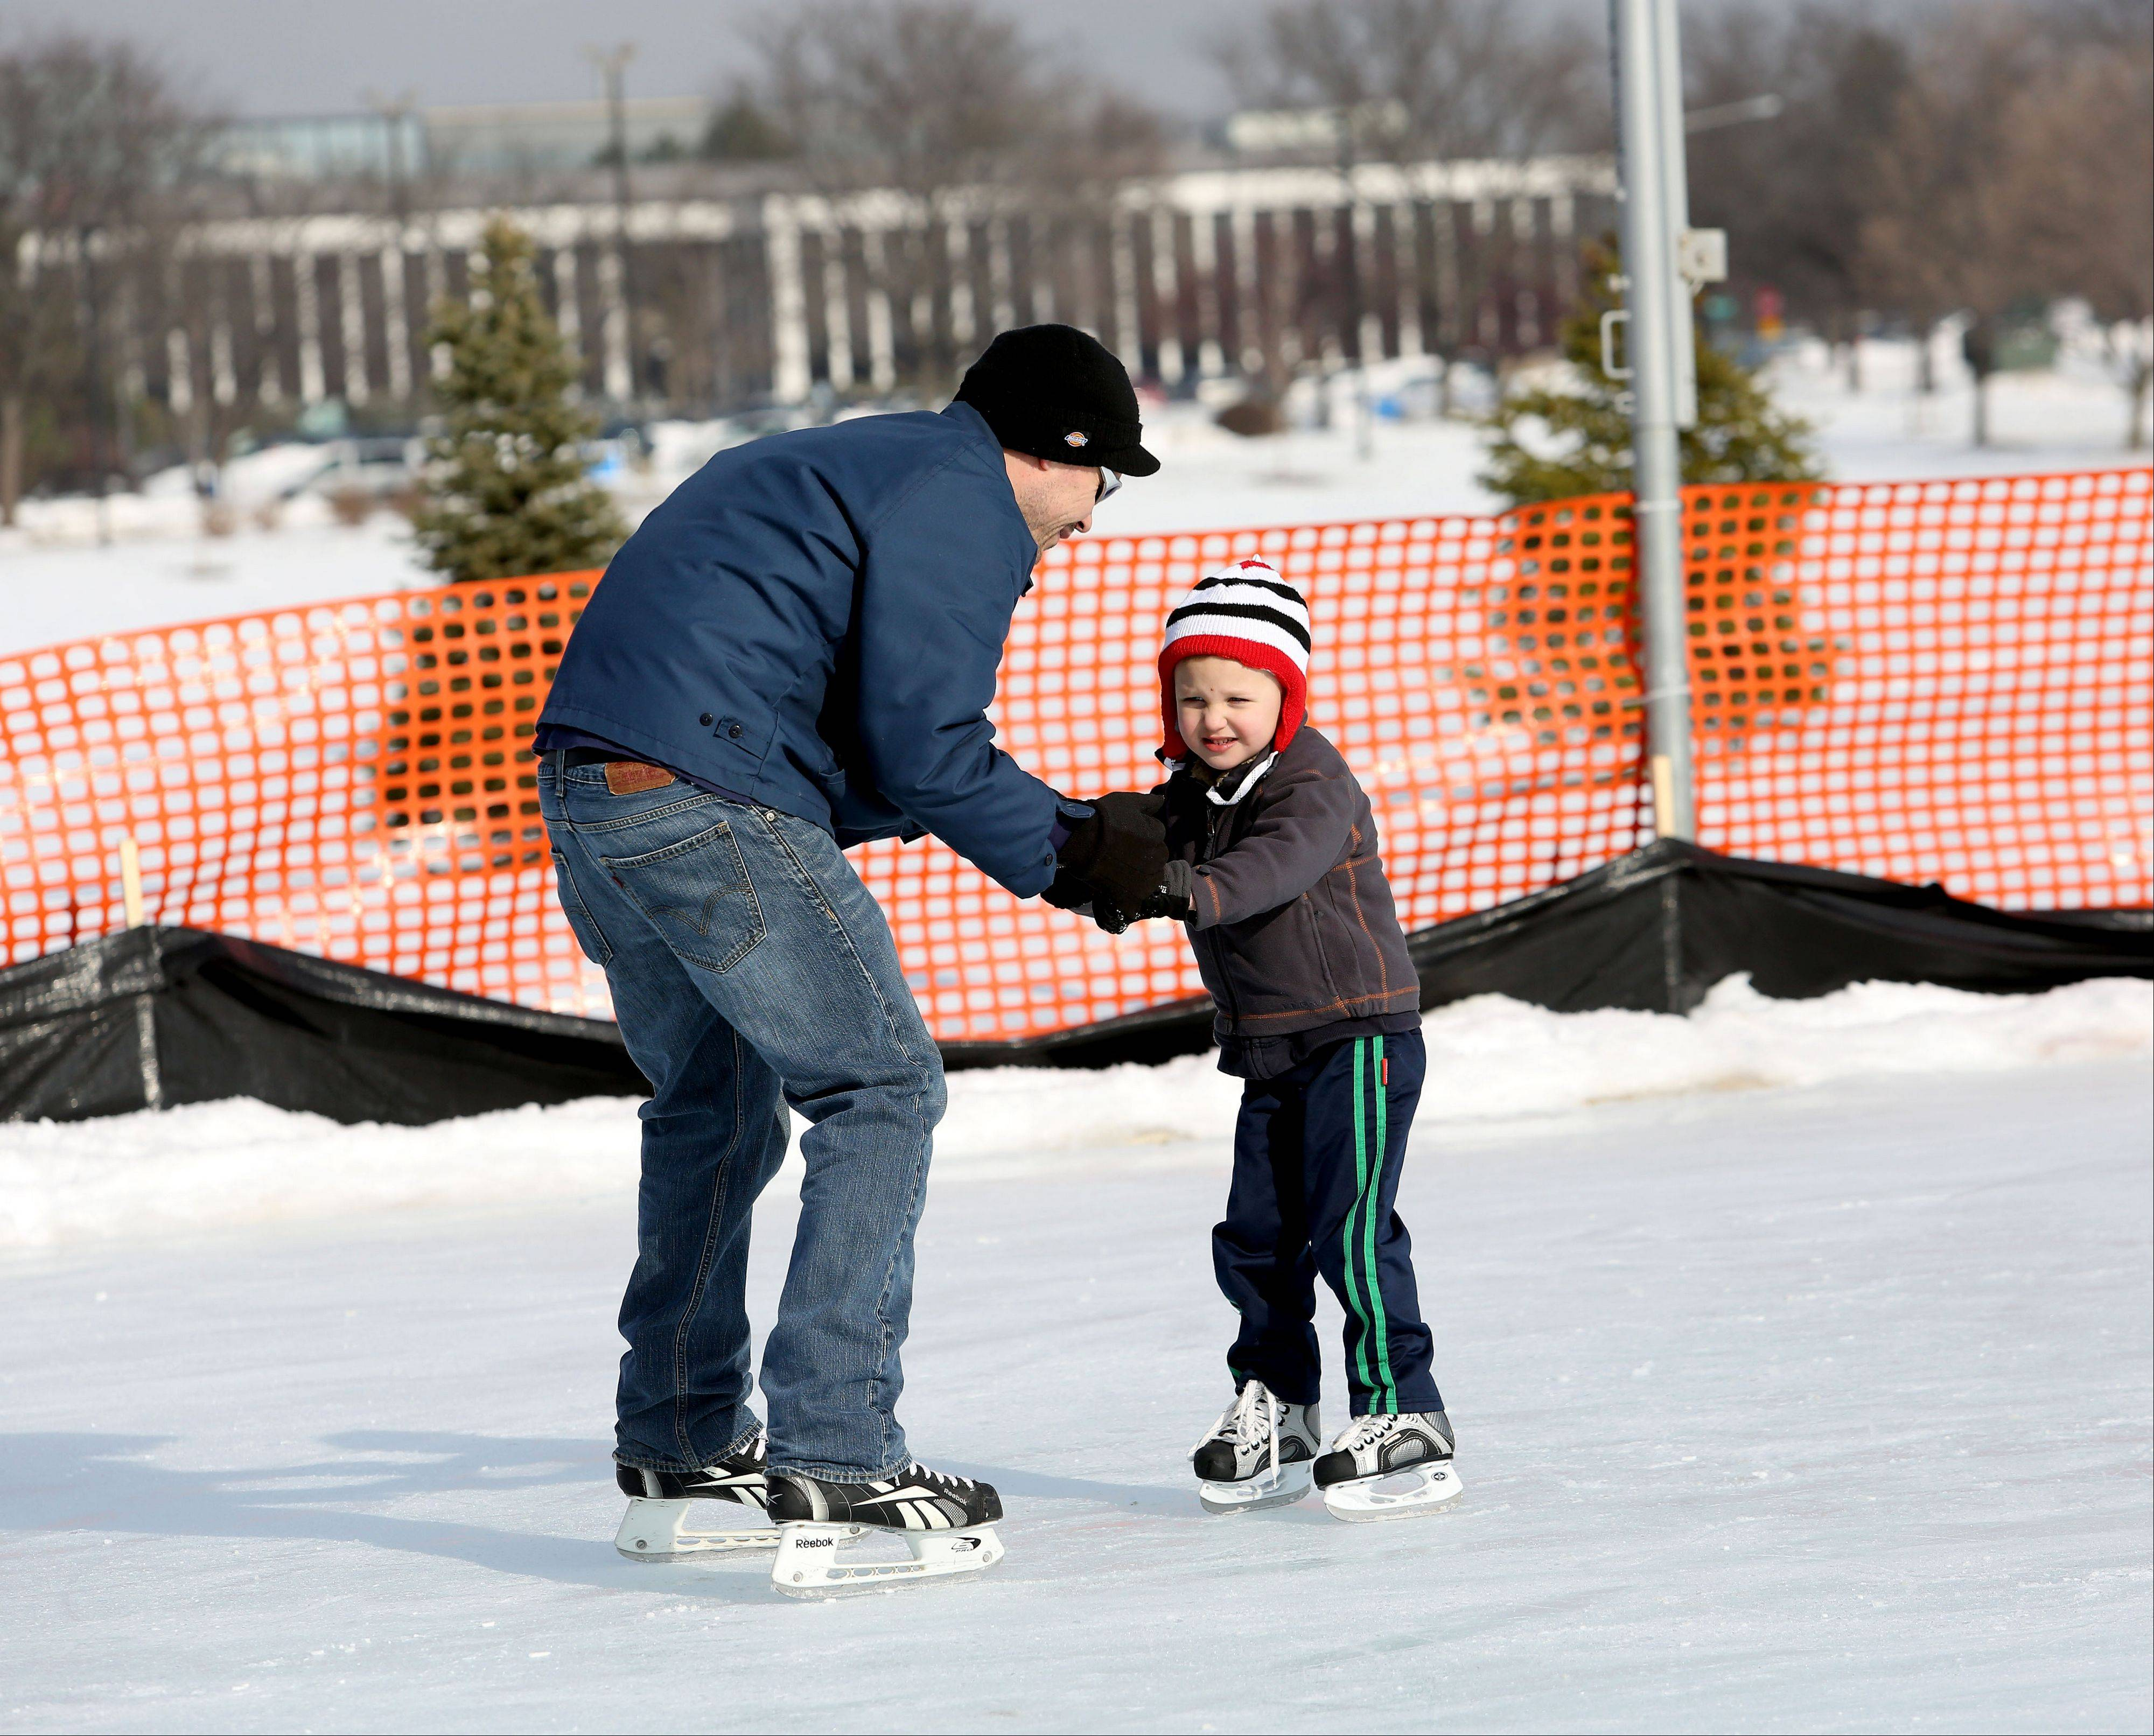 Eric Williamson helps his son Oslo, 4, around the ice rink in Naperville's Nike Park.